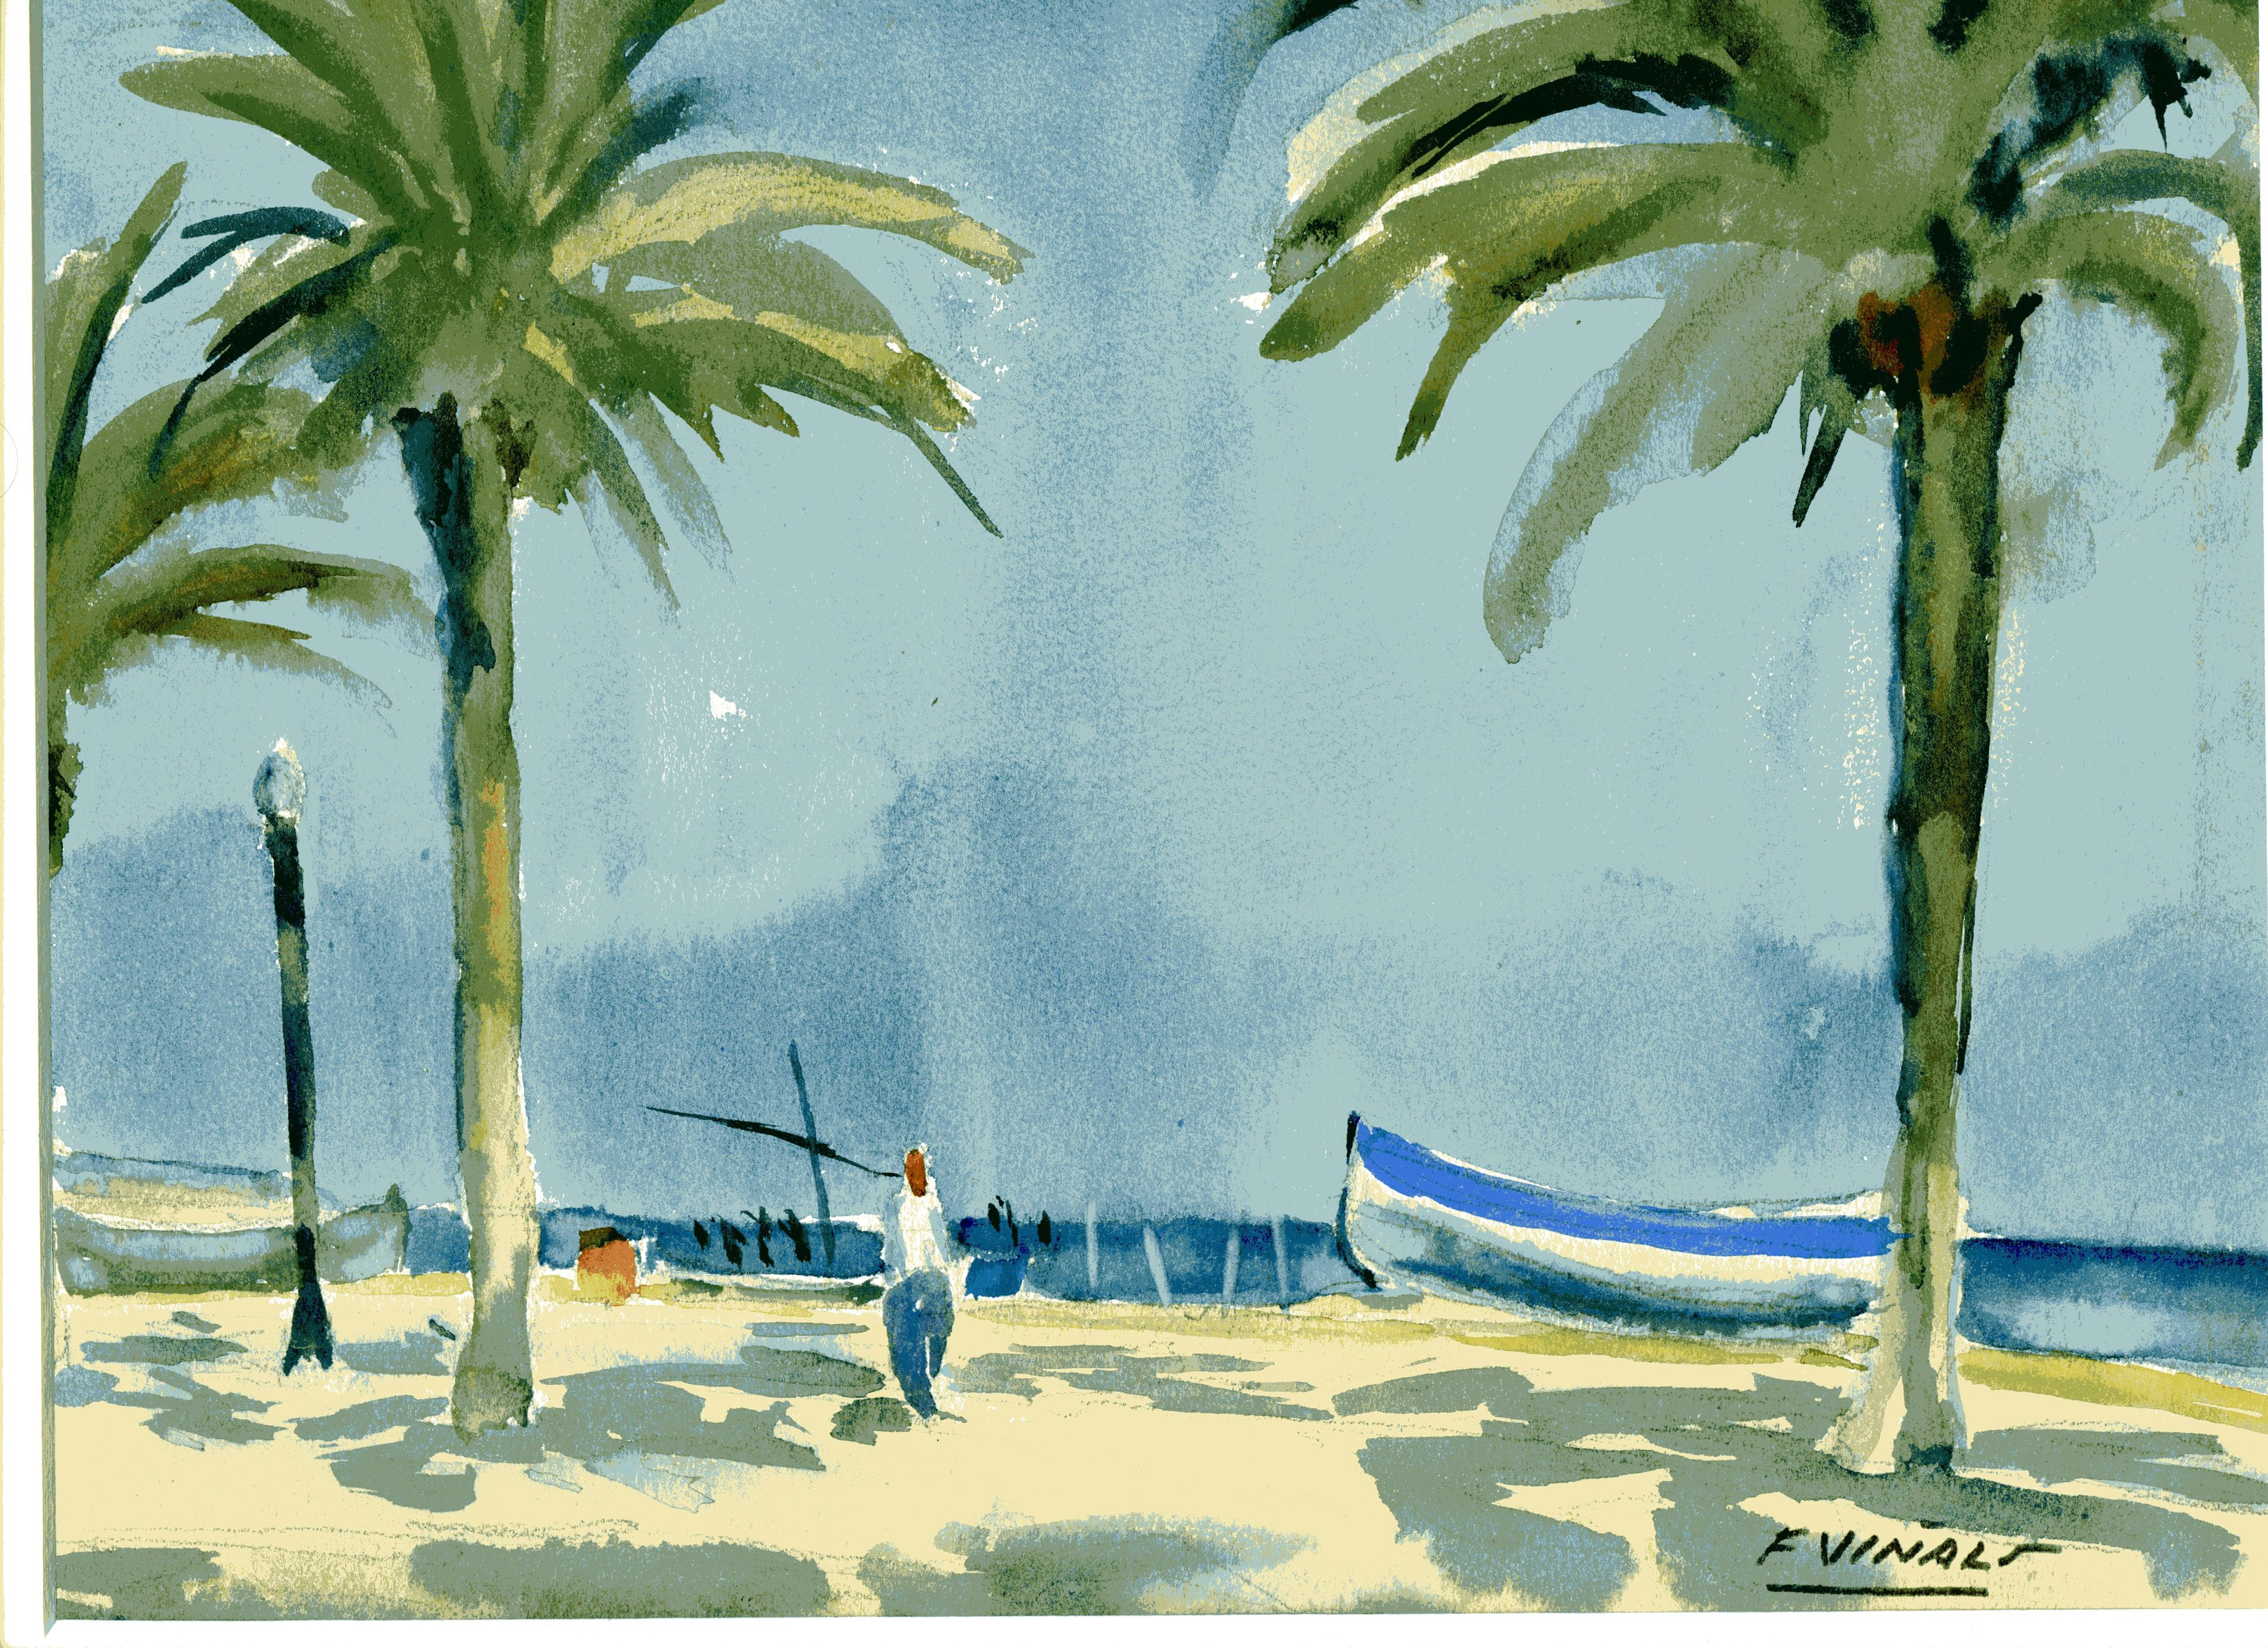 Pintor Frederic Viñals i Yscla Pintor Sitges